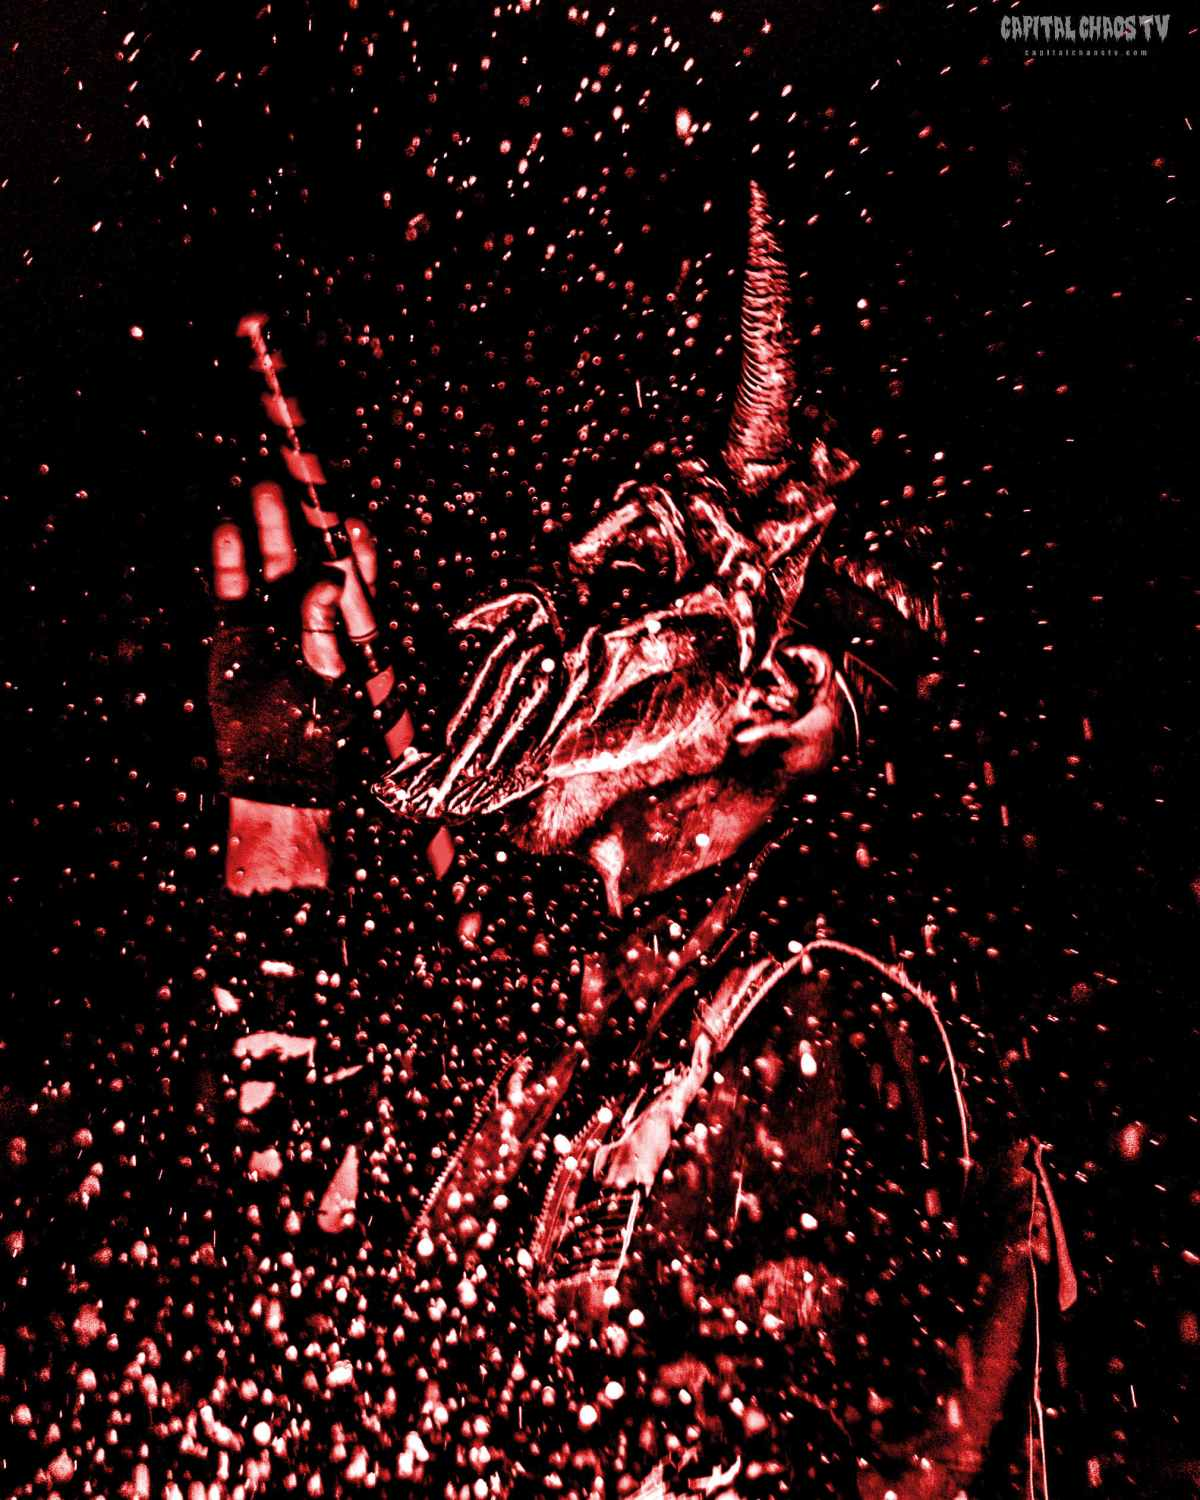 Concert Photo Review: Mushroomhead at The Boardwalk